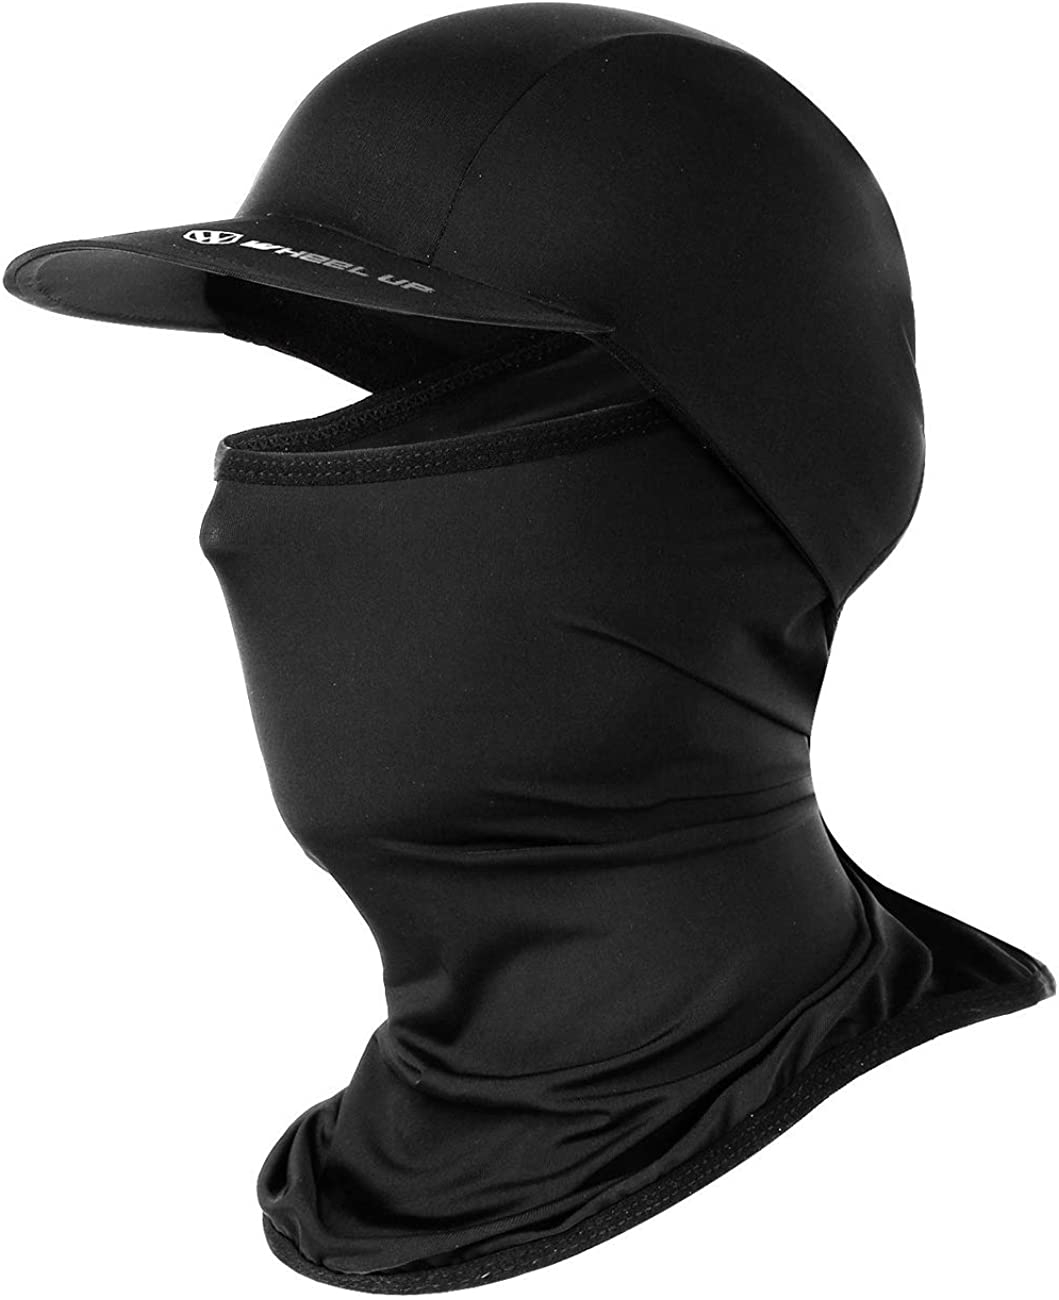 WSHOWY Sprot Balaclava Face Mask with Cap Neck Gaiter Unisex Covered Bandana Scarf 100% Workout Protection